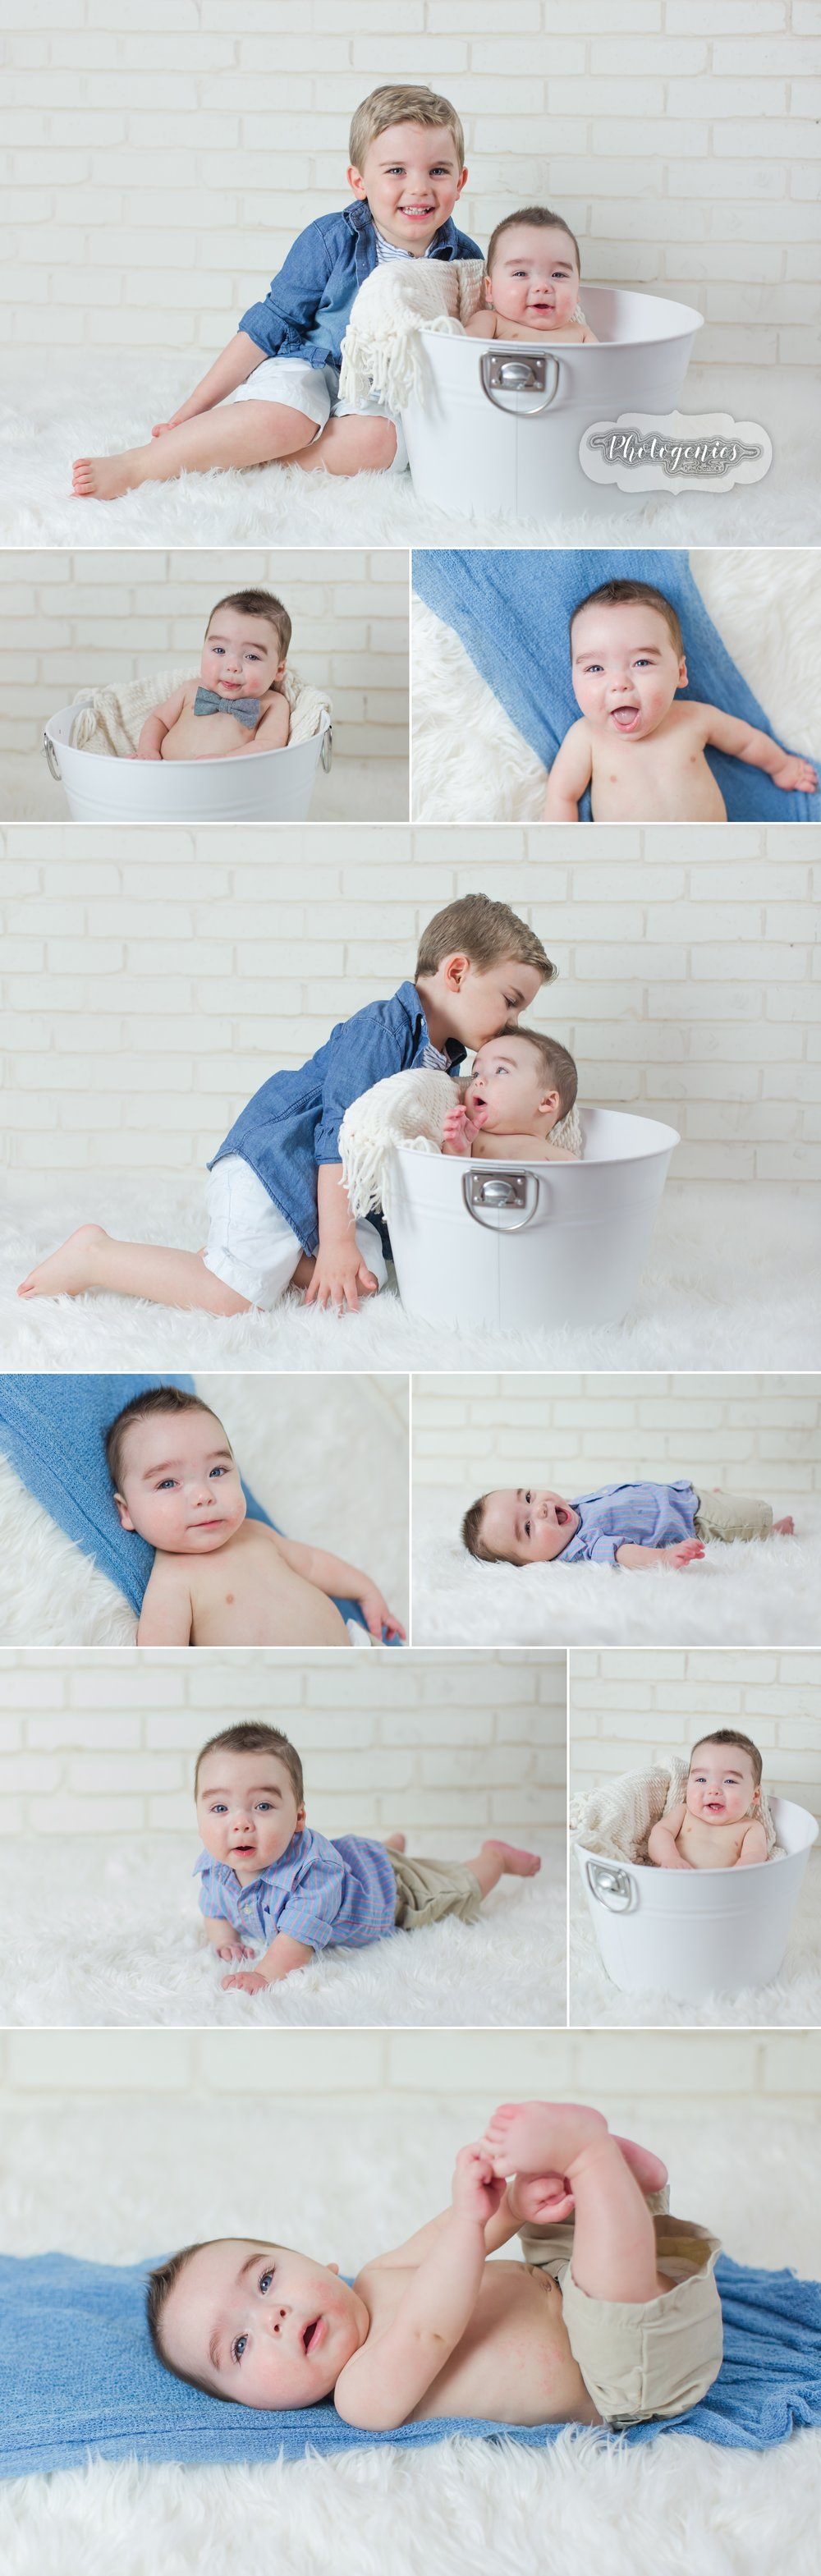 family_spring_boys_four_photography_what_to_wear_ideas_poses_brothers_baby_st_louis_pictures_sitting_up_six_months